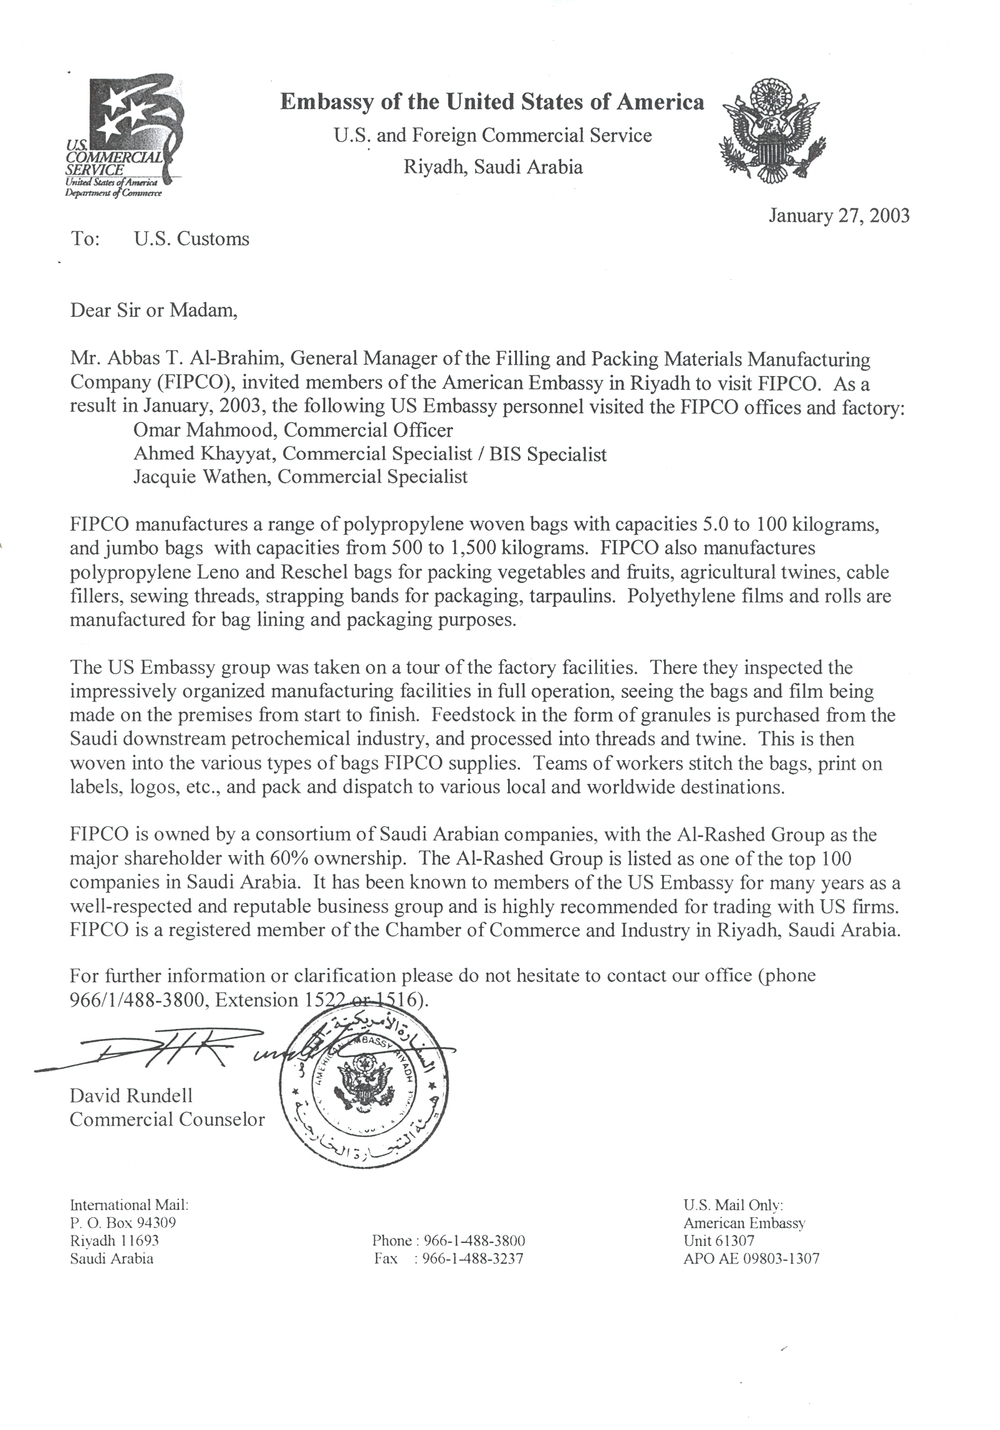 US-FOREIGN-COMMERCIAL LETTER.jpg